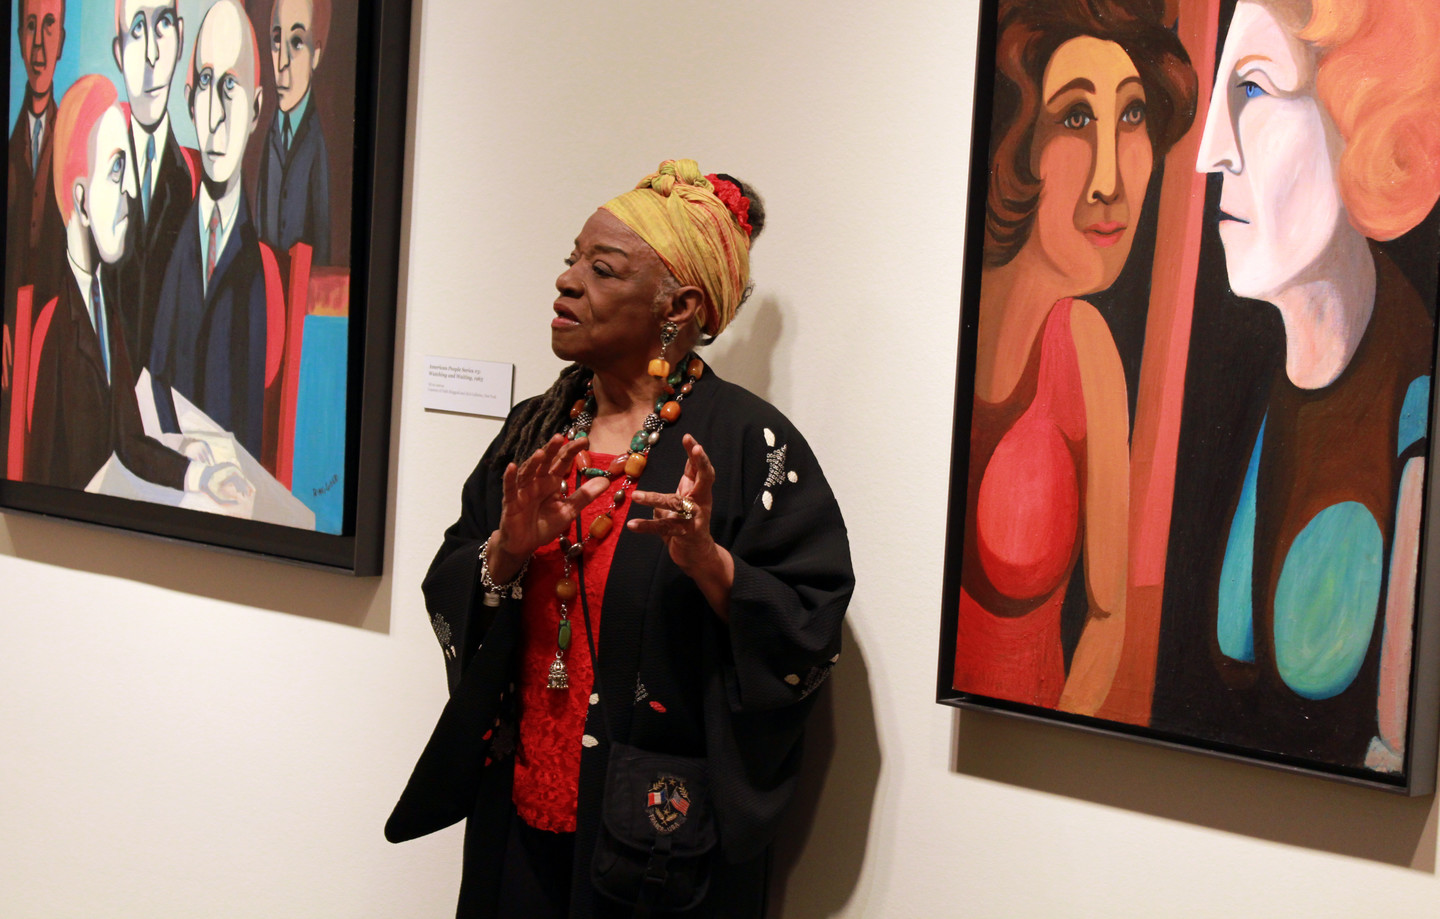 Faith Ringgold stands and speaks, gesturing with her hands, in front of her portrait paintings. She is a dark-skinned adult woman wearing colorful clothing and a black sweater, including a yellow head wrap and chunky jewelry—rings, earrings, necklaces, and bracelets.